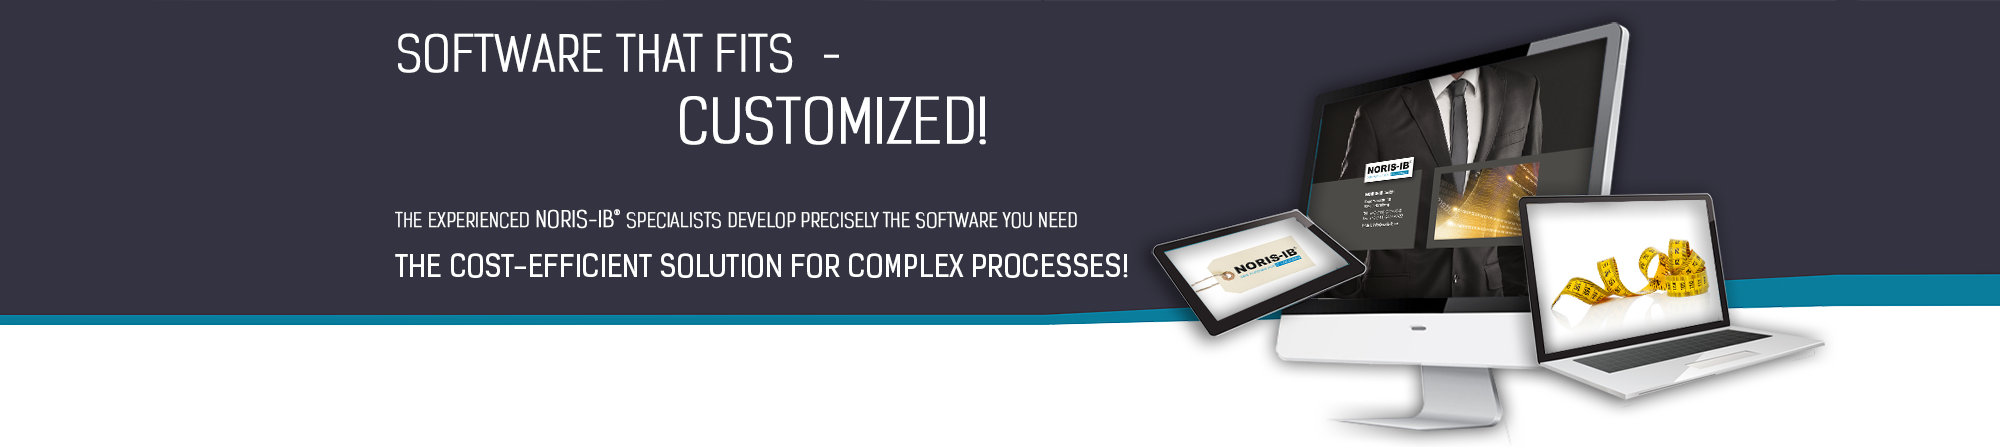 Software that fits-customized. The Experienced NORIS-IB Specialists Develop Precisely the software you need the cost-efficient solution for complex processes!